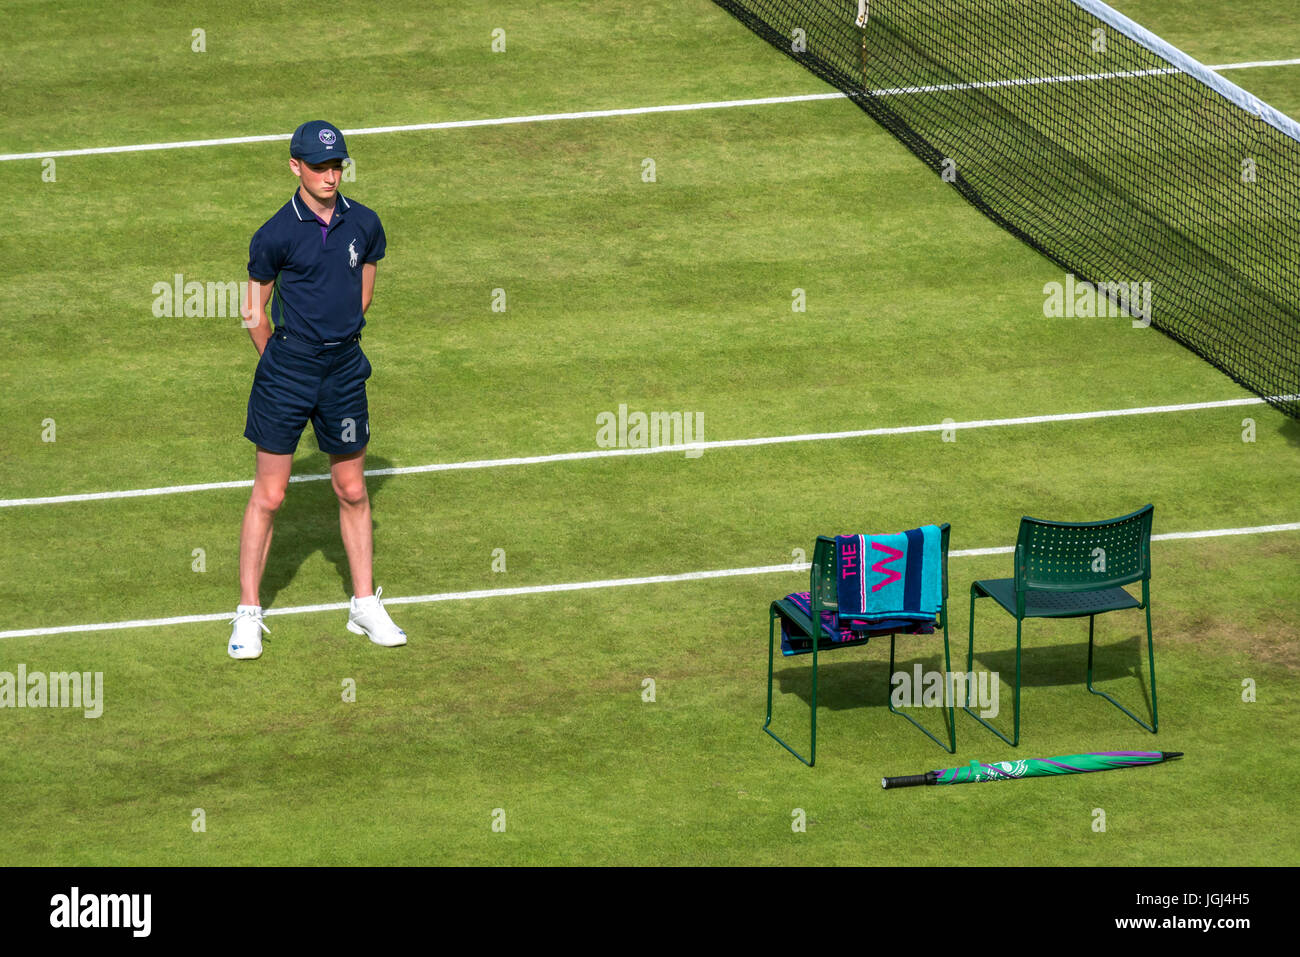 Ball boy standing to attention waiting for start of match and player to come onto Centre Court, Wimbledon tennis - Stock Image